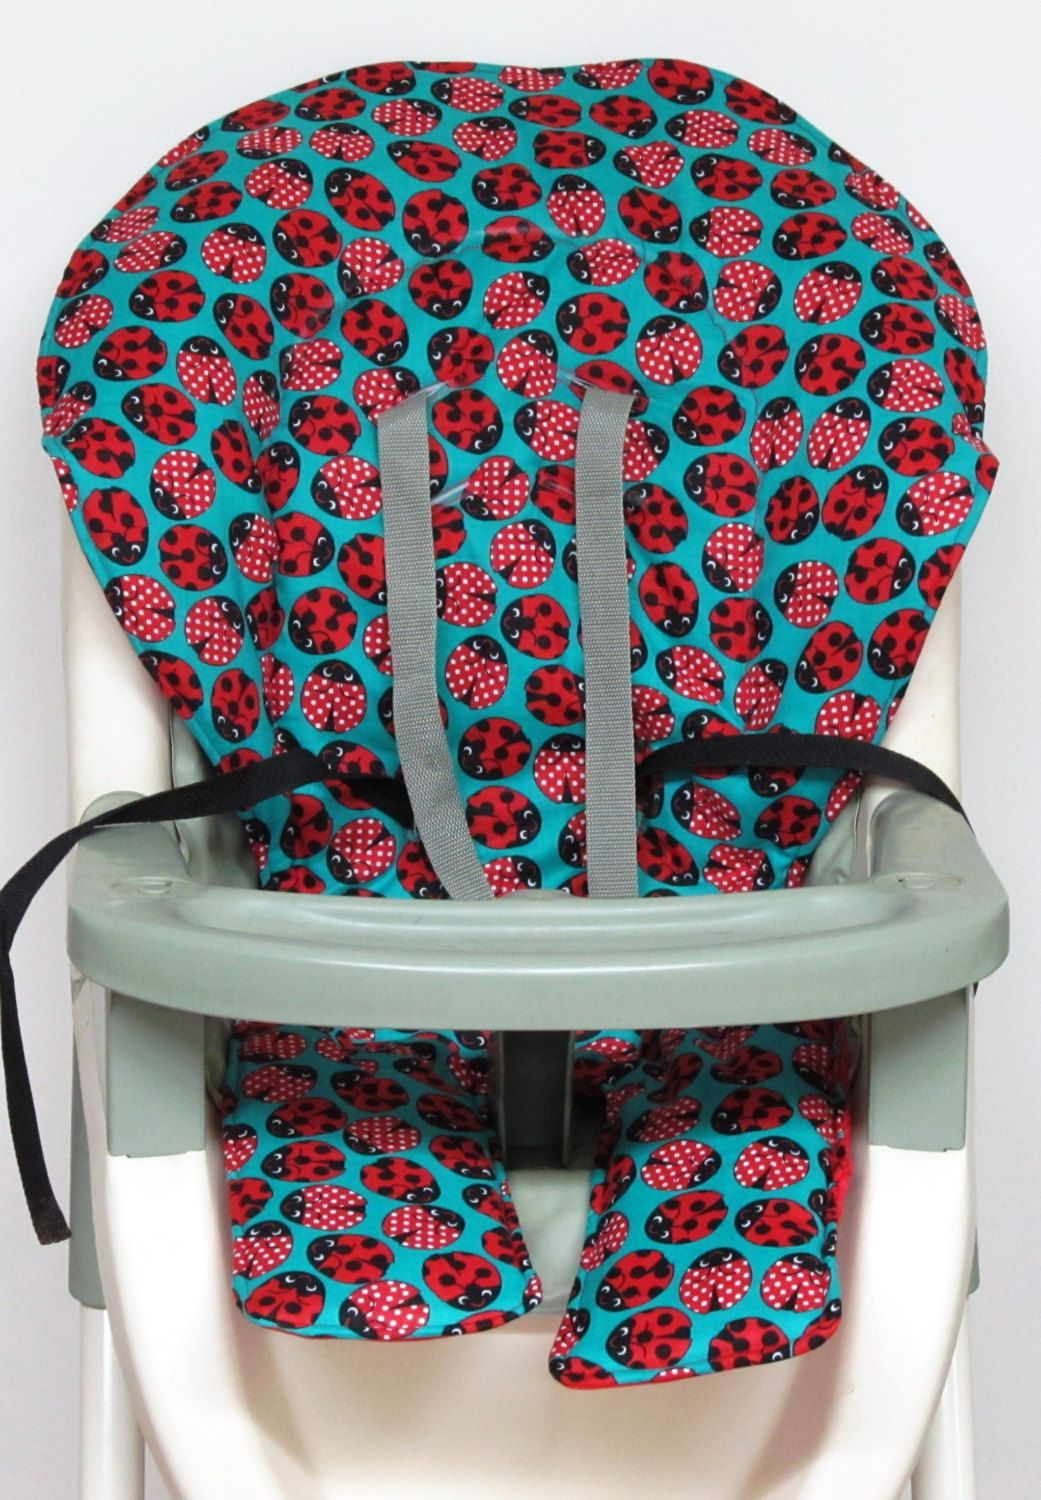 Graco High Chair Cover Replacement Ship Ready Pad Cushion Ladybug On Aqua By Sewingsilly Etsy